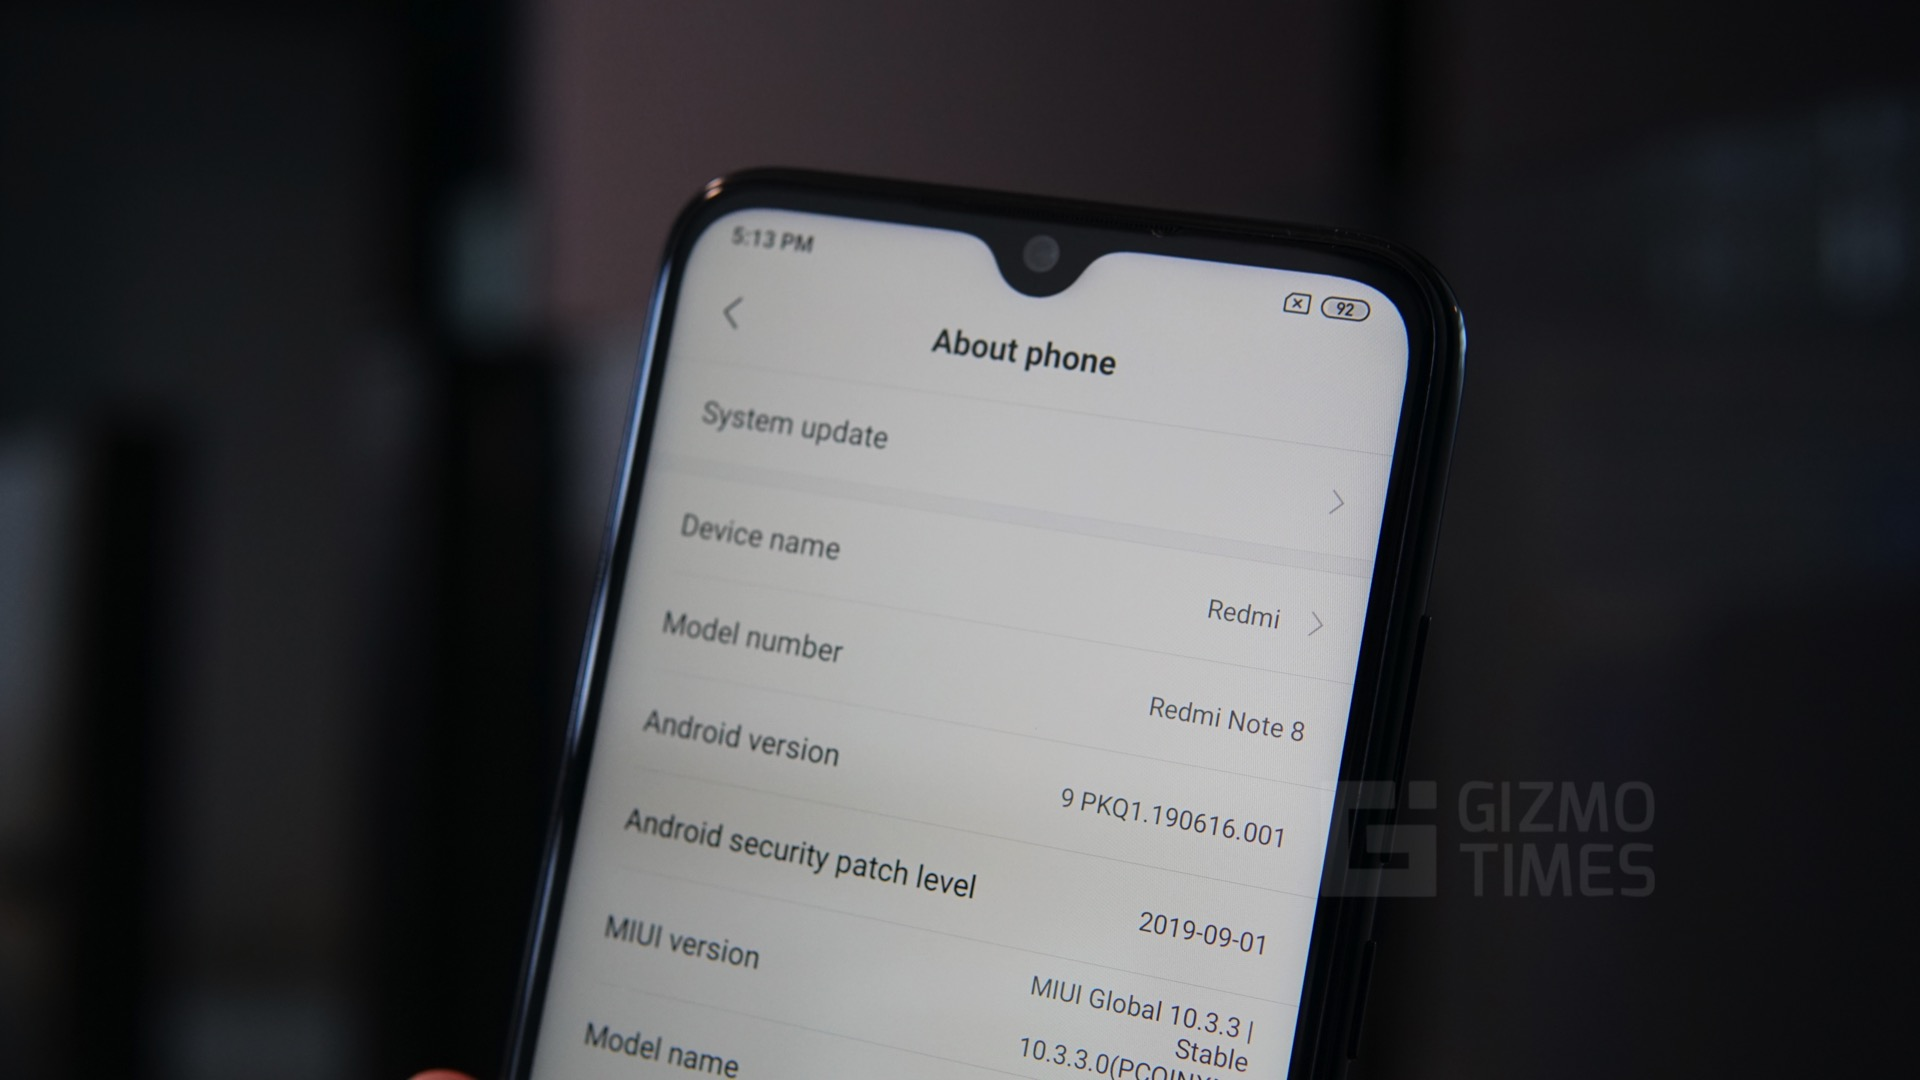 Redmi Note 8 about